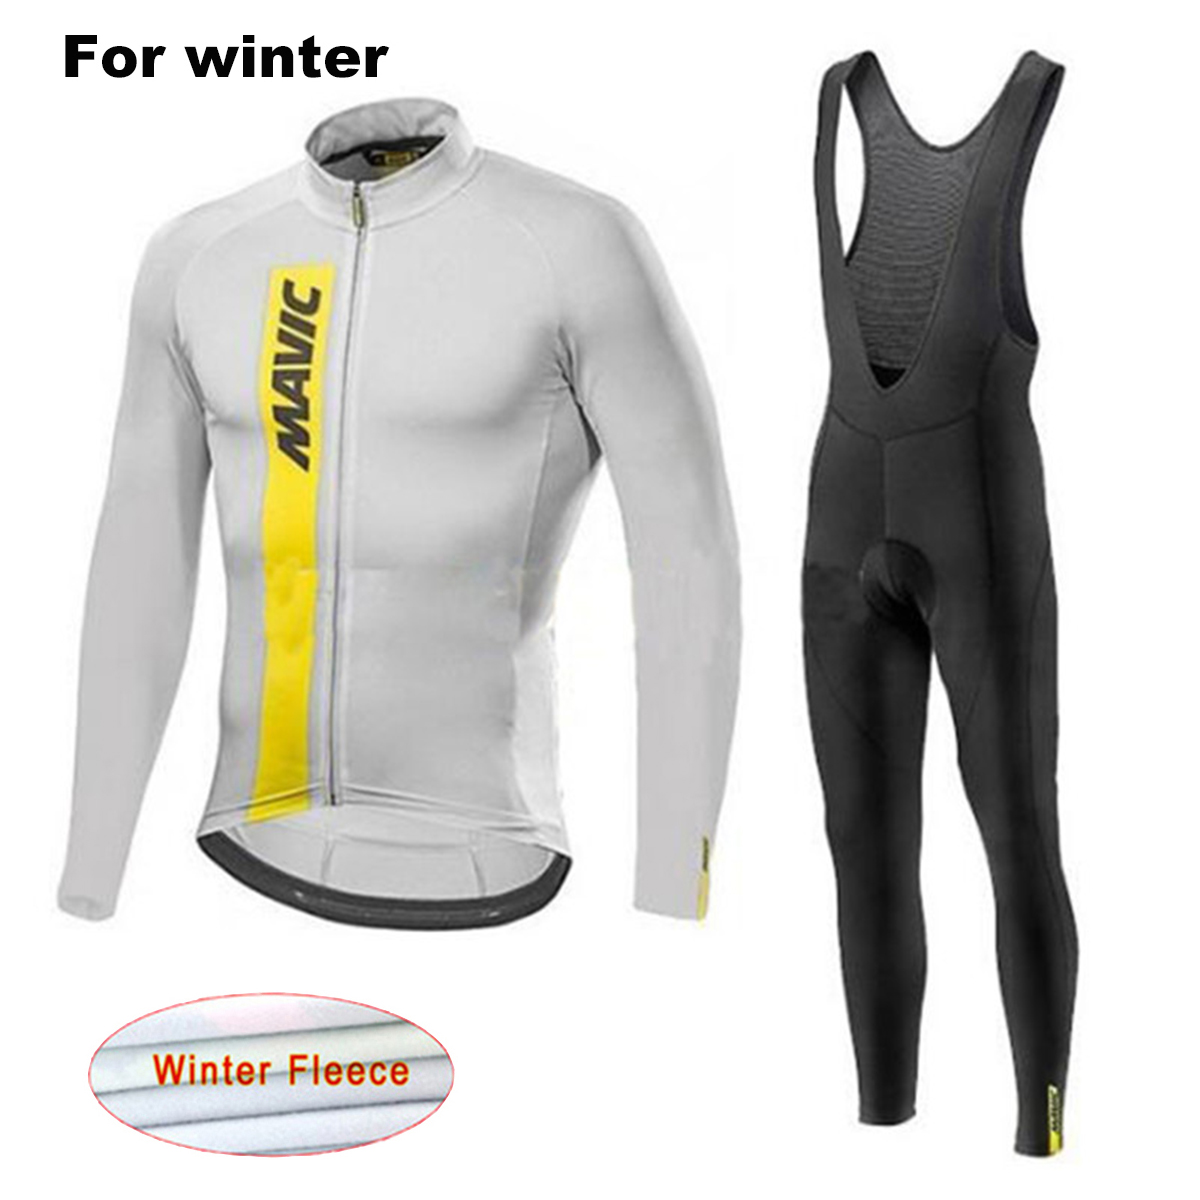 MAVIC 2017 Winter Warm Bicycle Clothing Cycling Jerseys Set New Men`s Thermal Fleece Team MTB Bike Clothes Ropa Maillot Ciclismo live team cycling jerseys suit a001